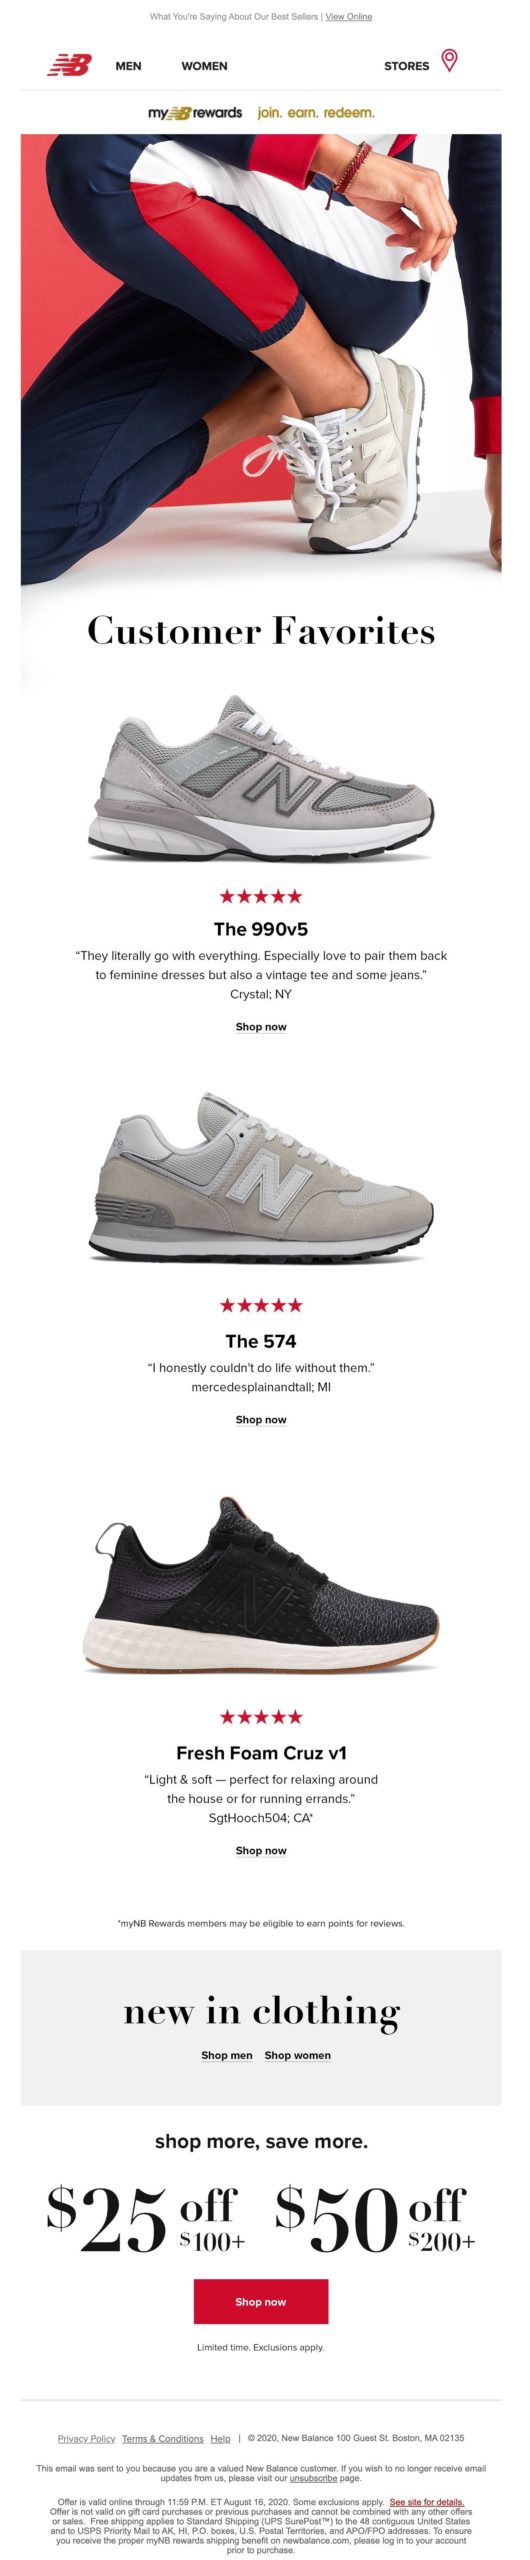 New balance doing a great job with their marketing emailing. The newsletter features customer reviews, big bold photos, and one clear call to action button.